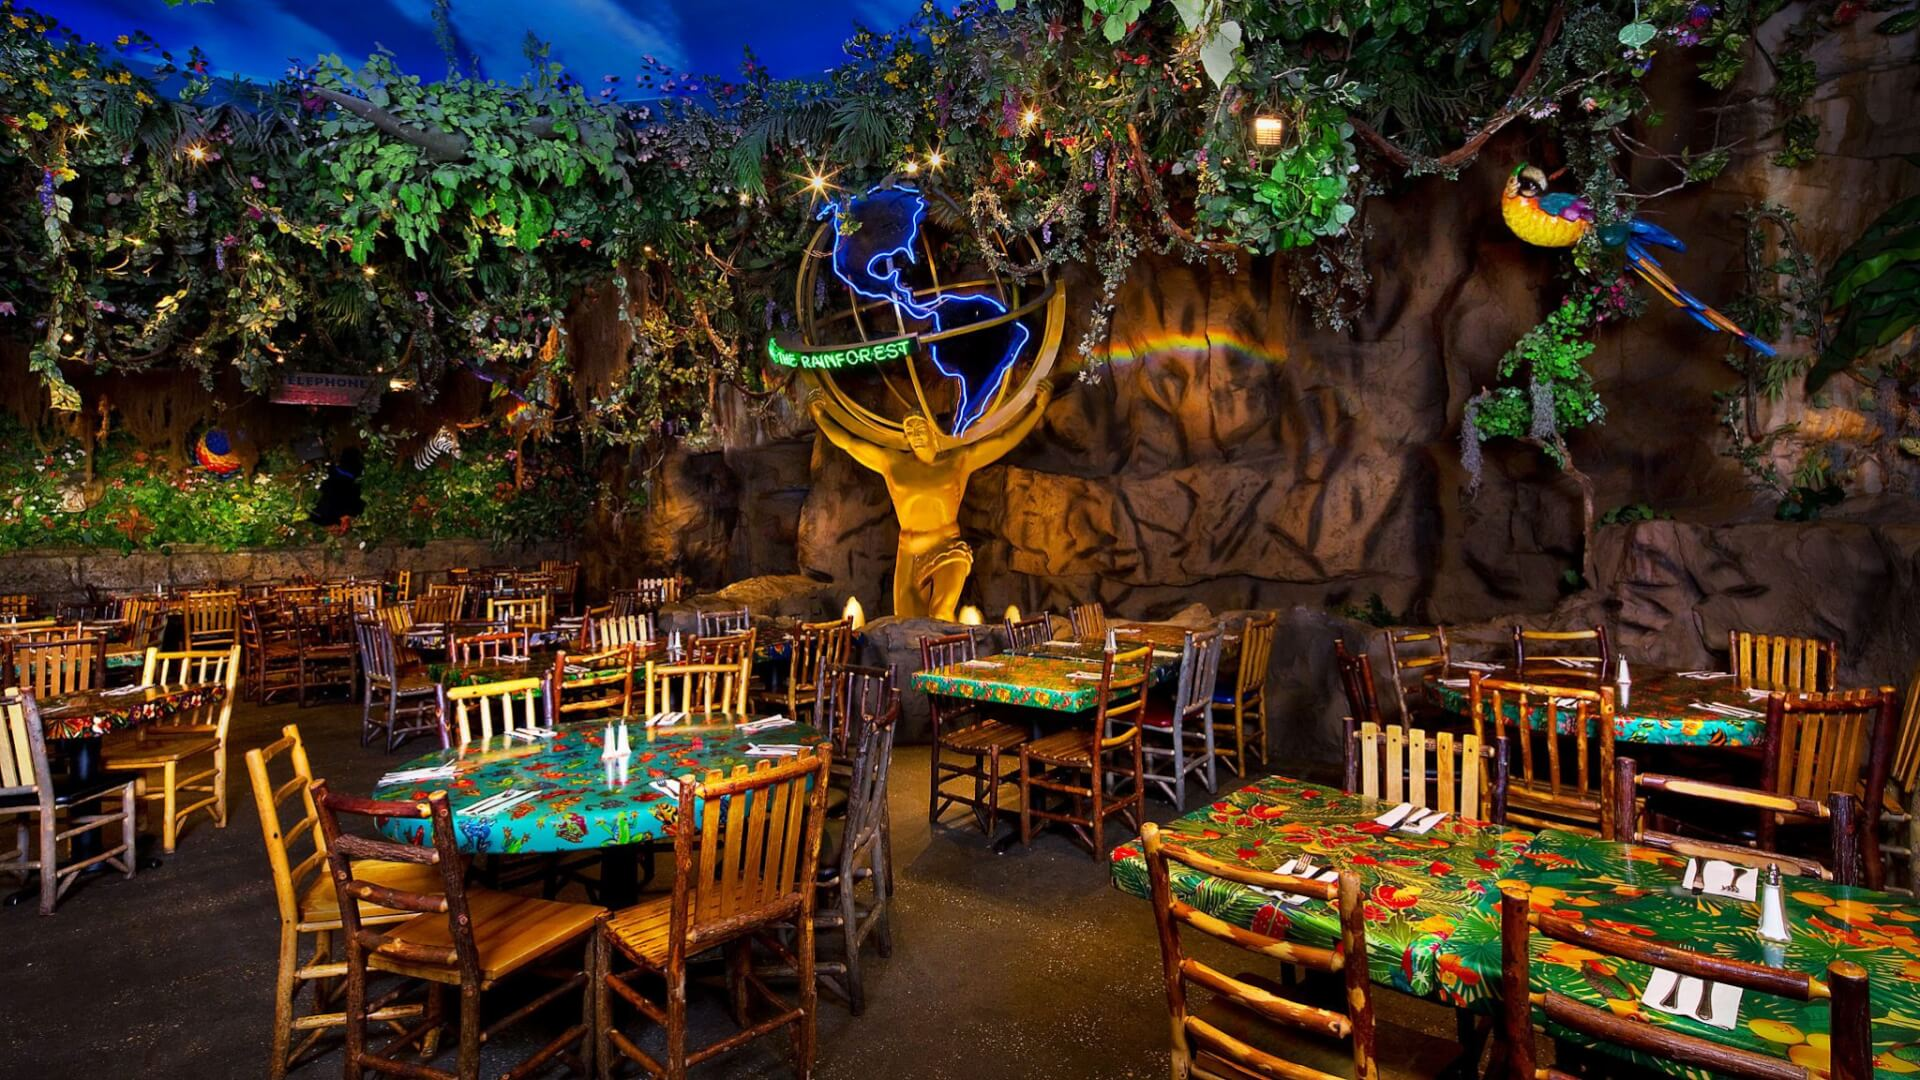 Rainforest Cafe Amc Theatres Espn Zone Earl Of Sandwich